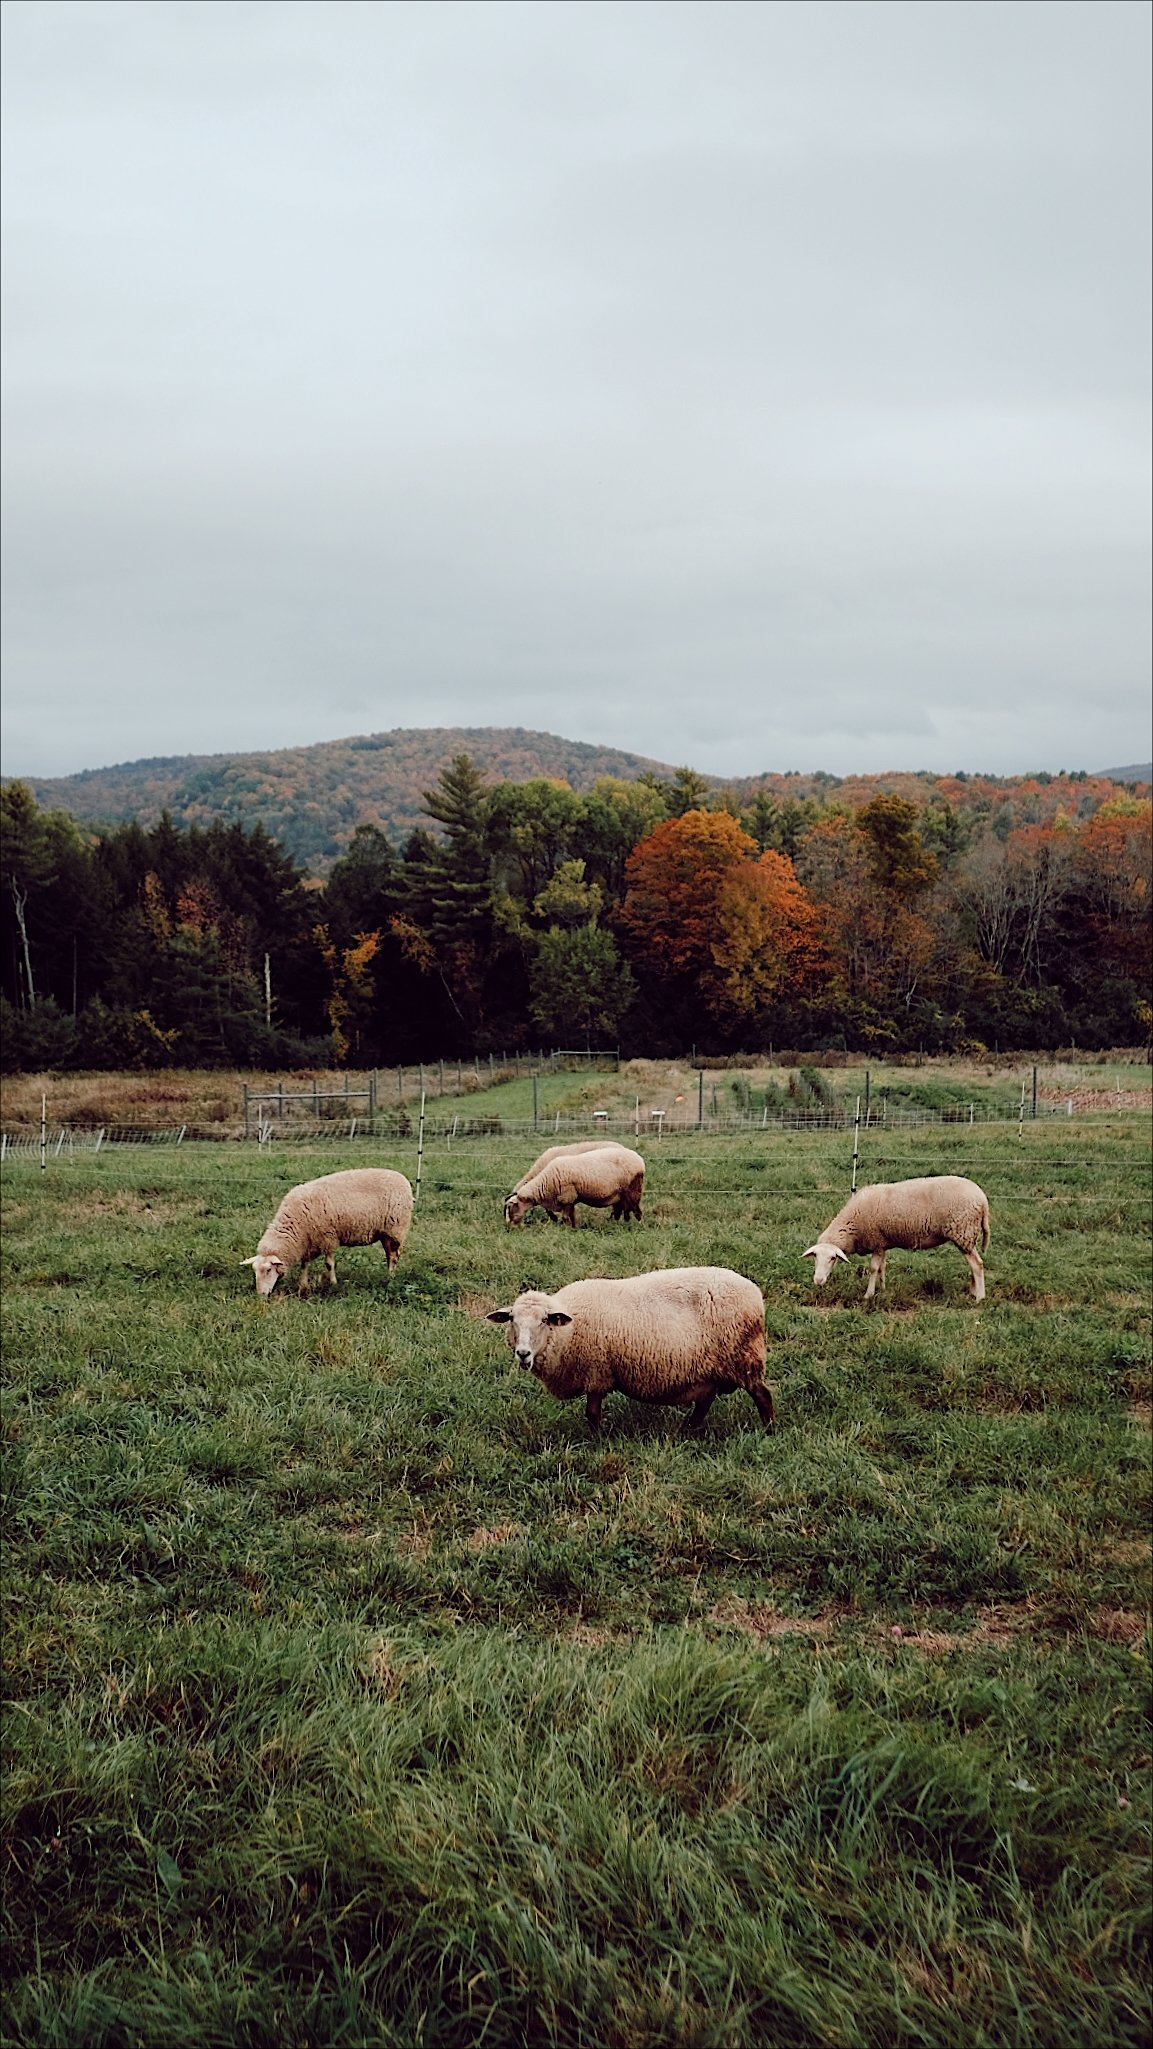 Sheep graze in a pasture in front of fall foliage